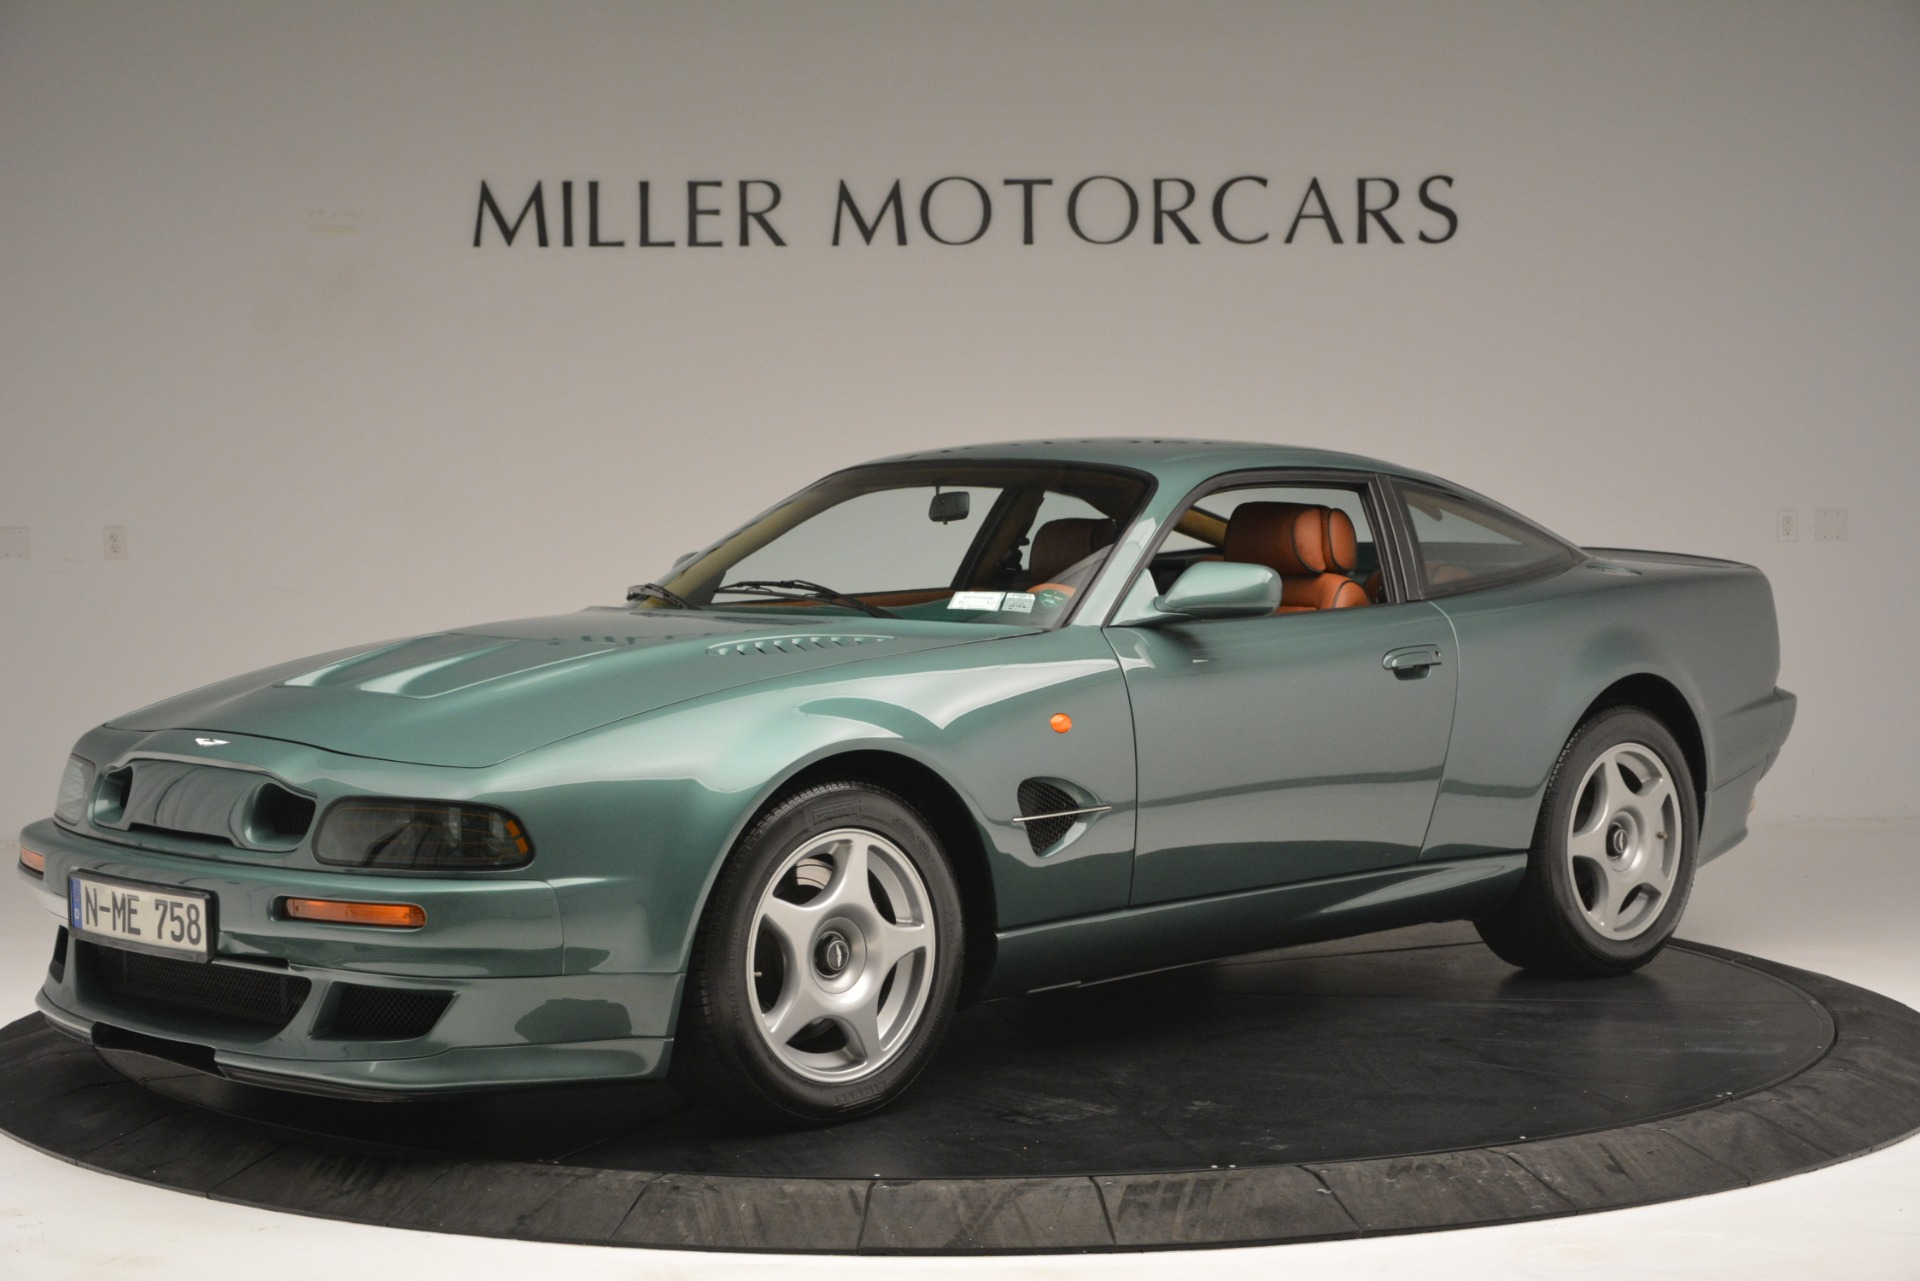 Used 1999 Aston Martin V8 Vantage Le Mans V600 Coupe for sale $550,000 at McLaren Greenwich in Greenwich CT 06830 1